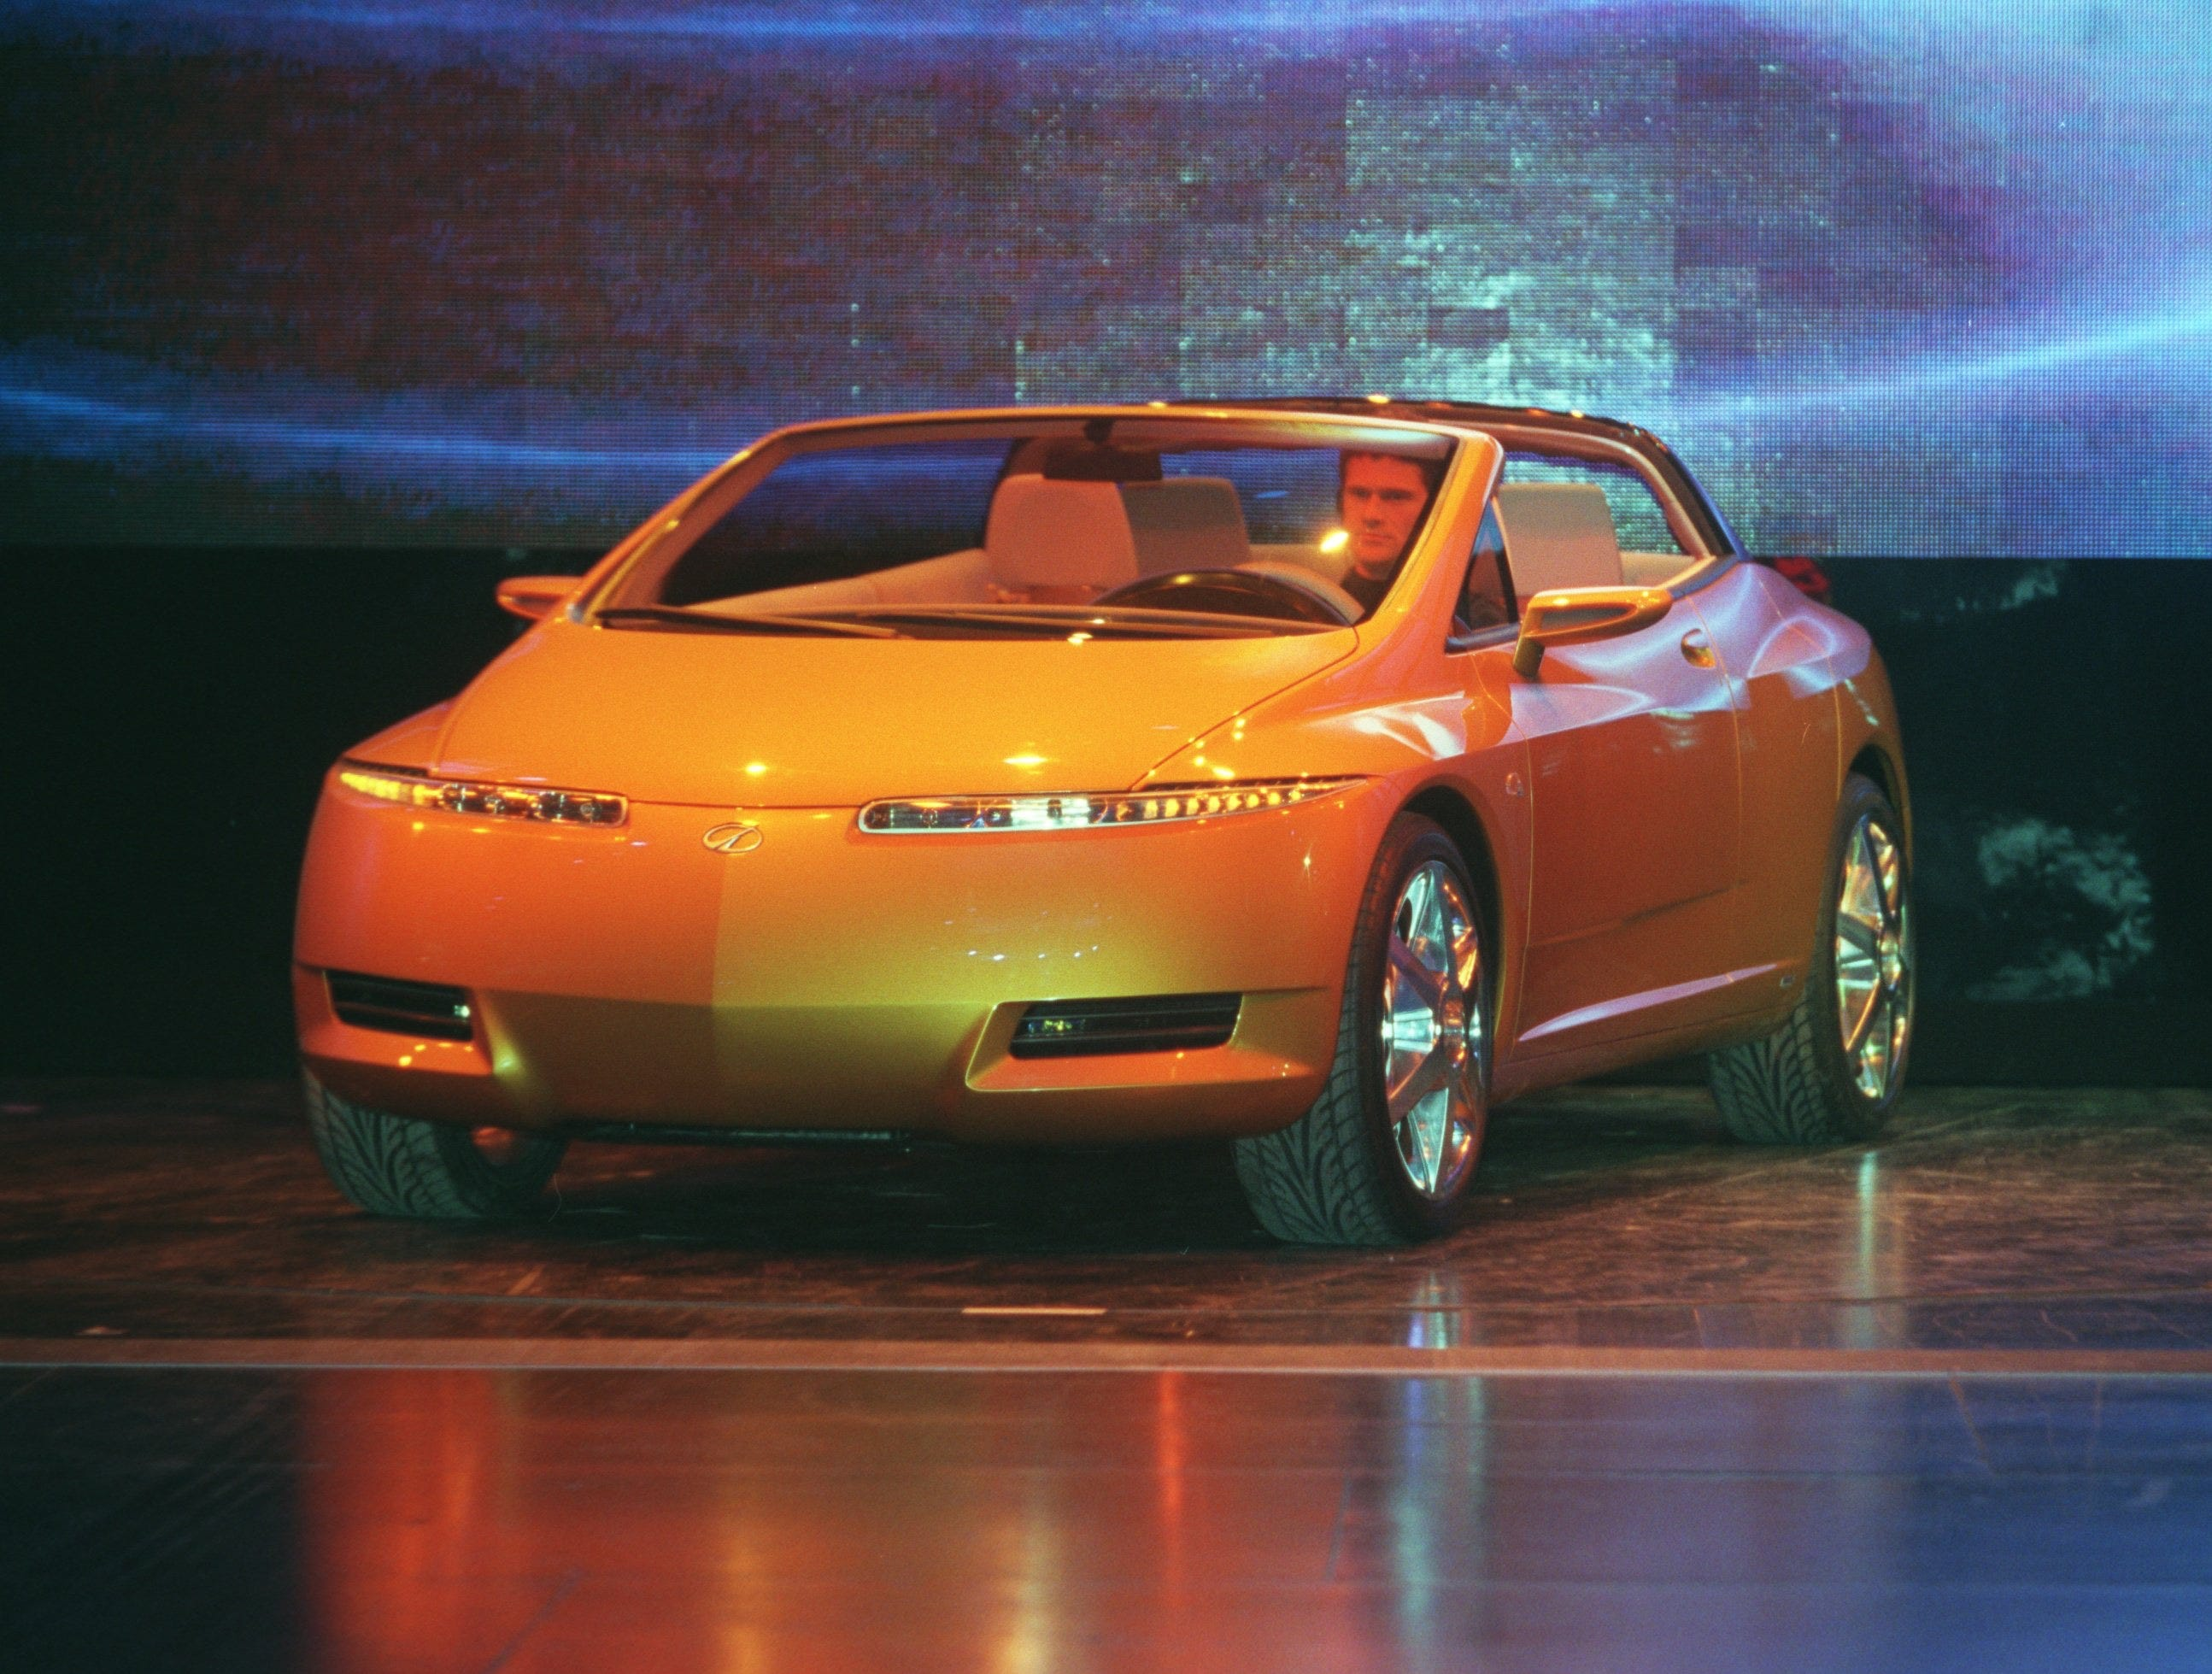 Oldsmobile's O4 concept car is was unveiled in 2001.